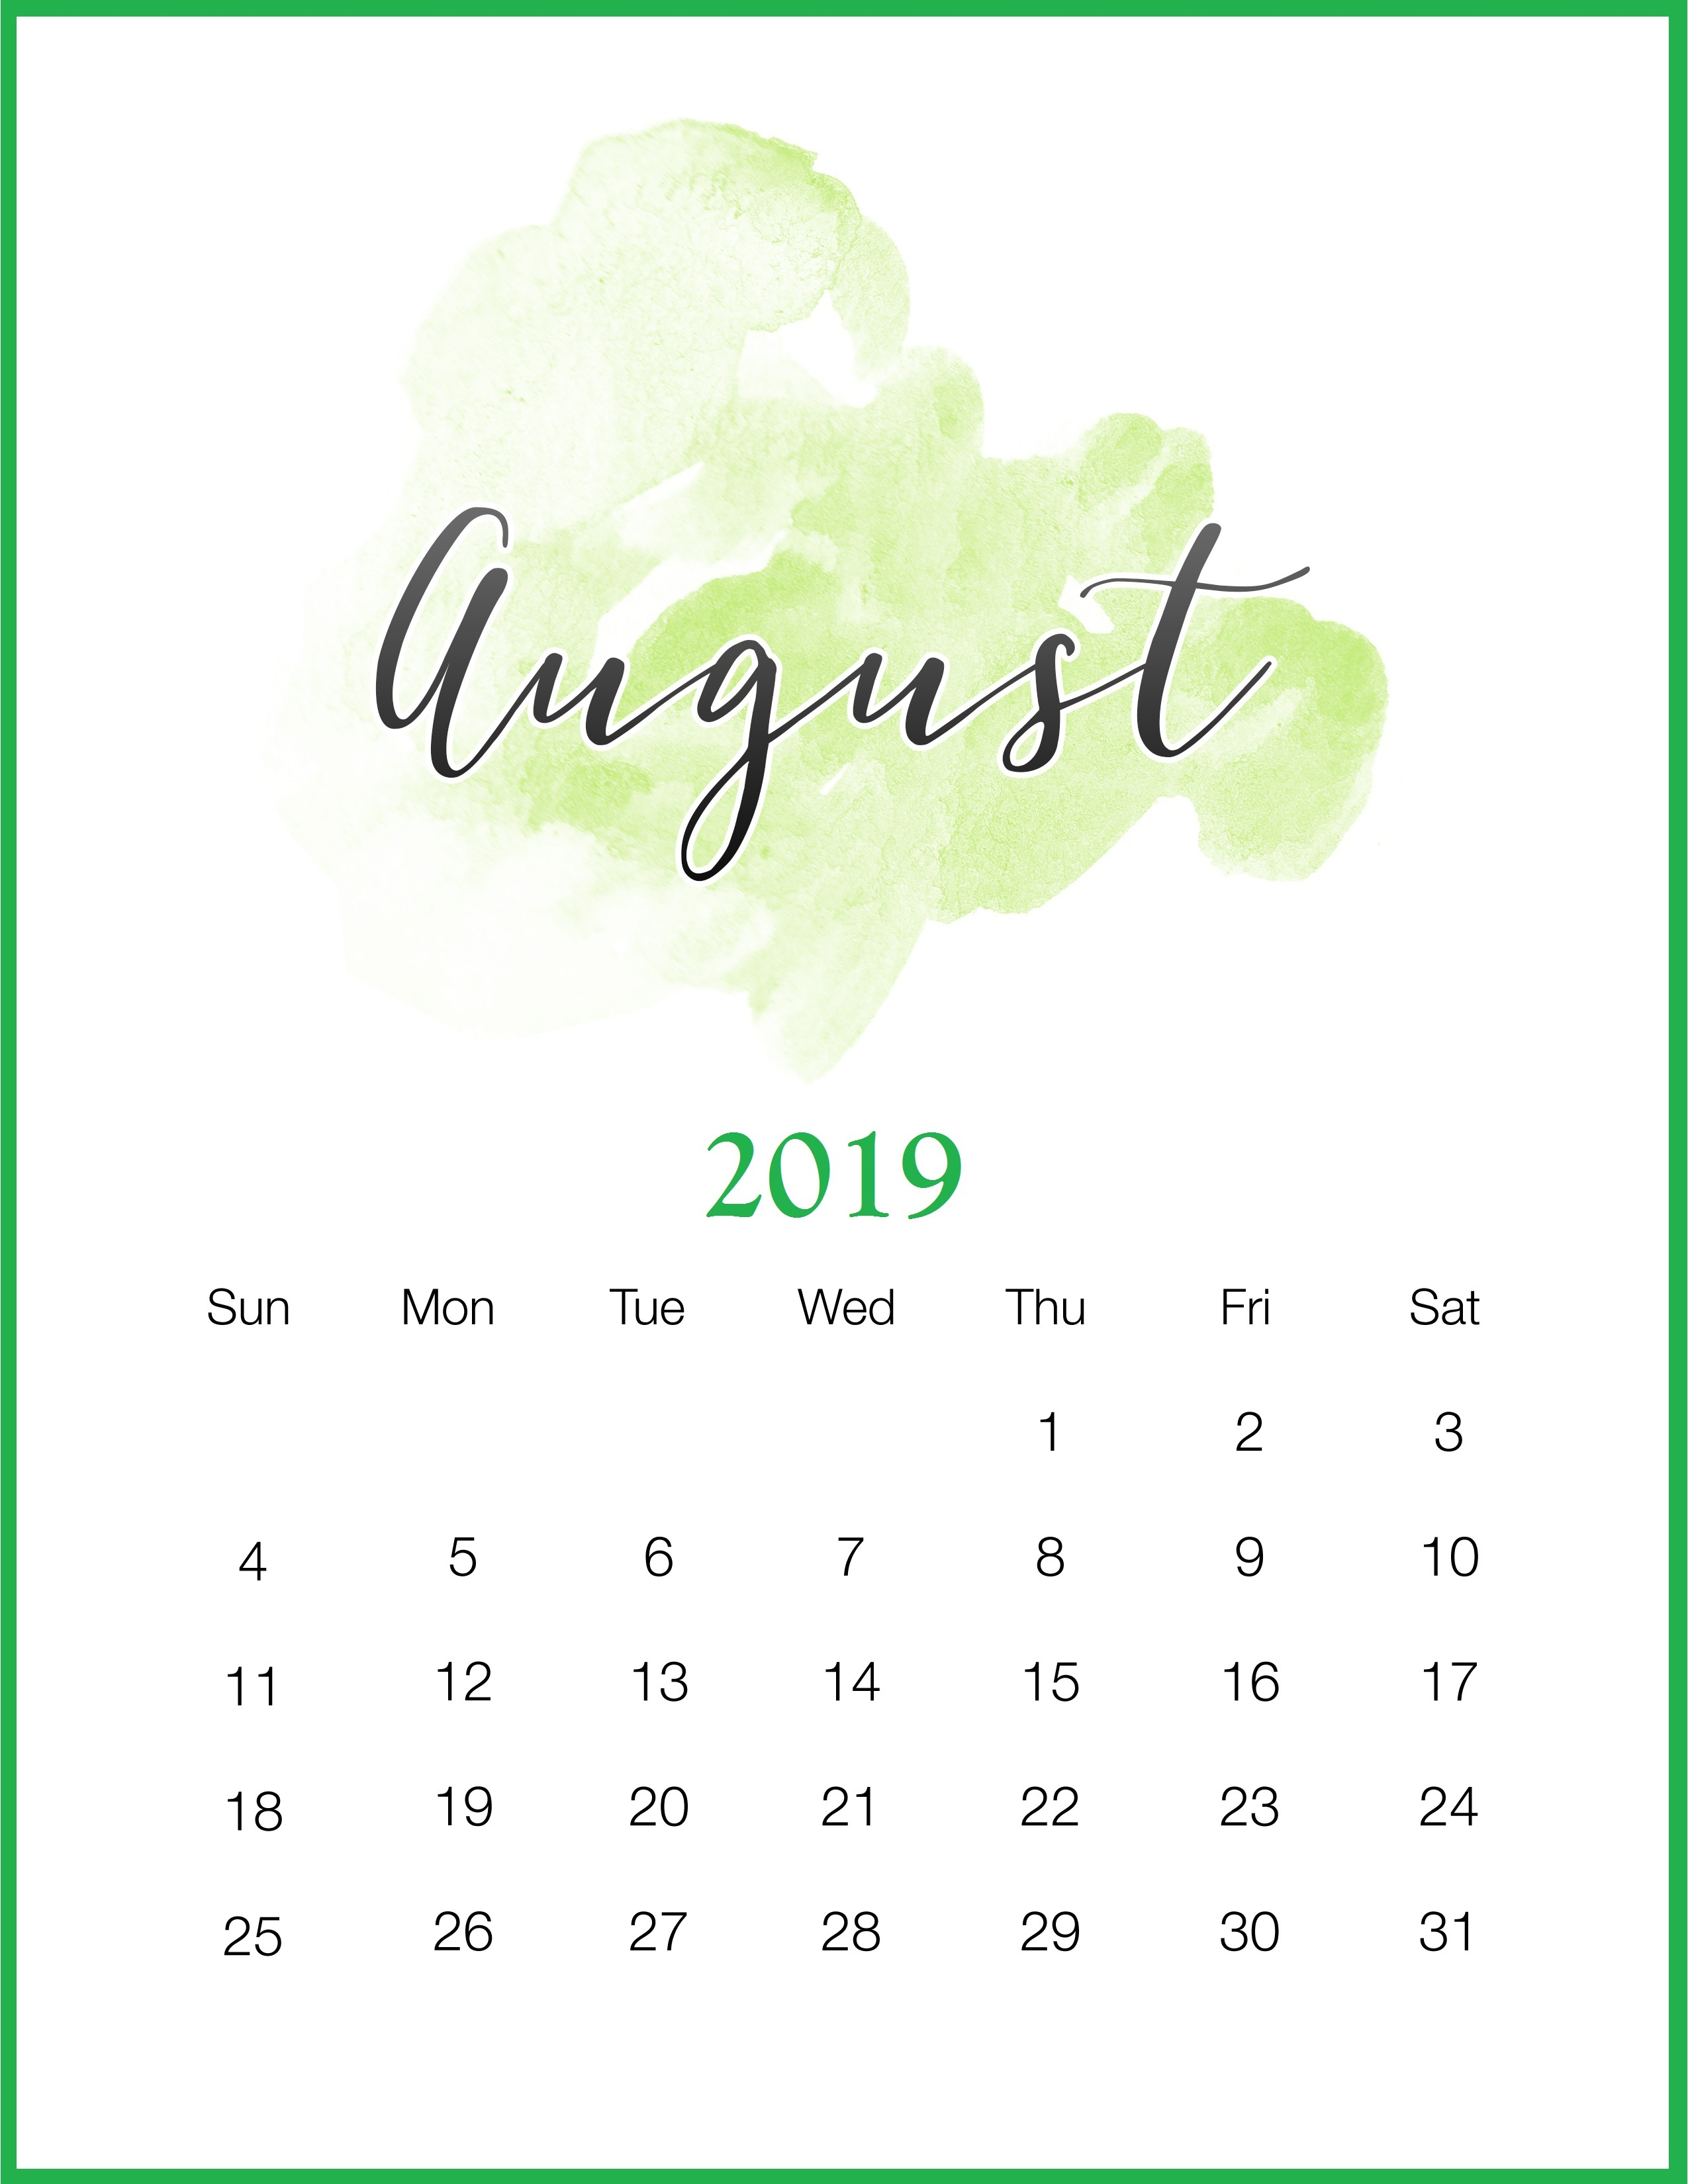 August 2019 Calendar Printable Template - Pdf, Word, Excel with Cute August Monthly Calendar Template Printable